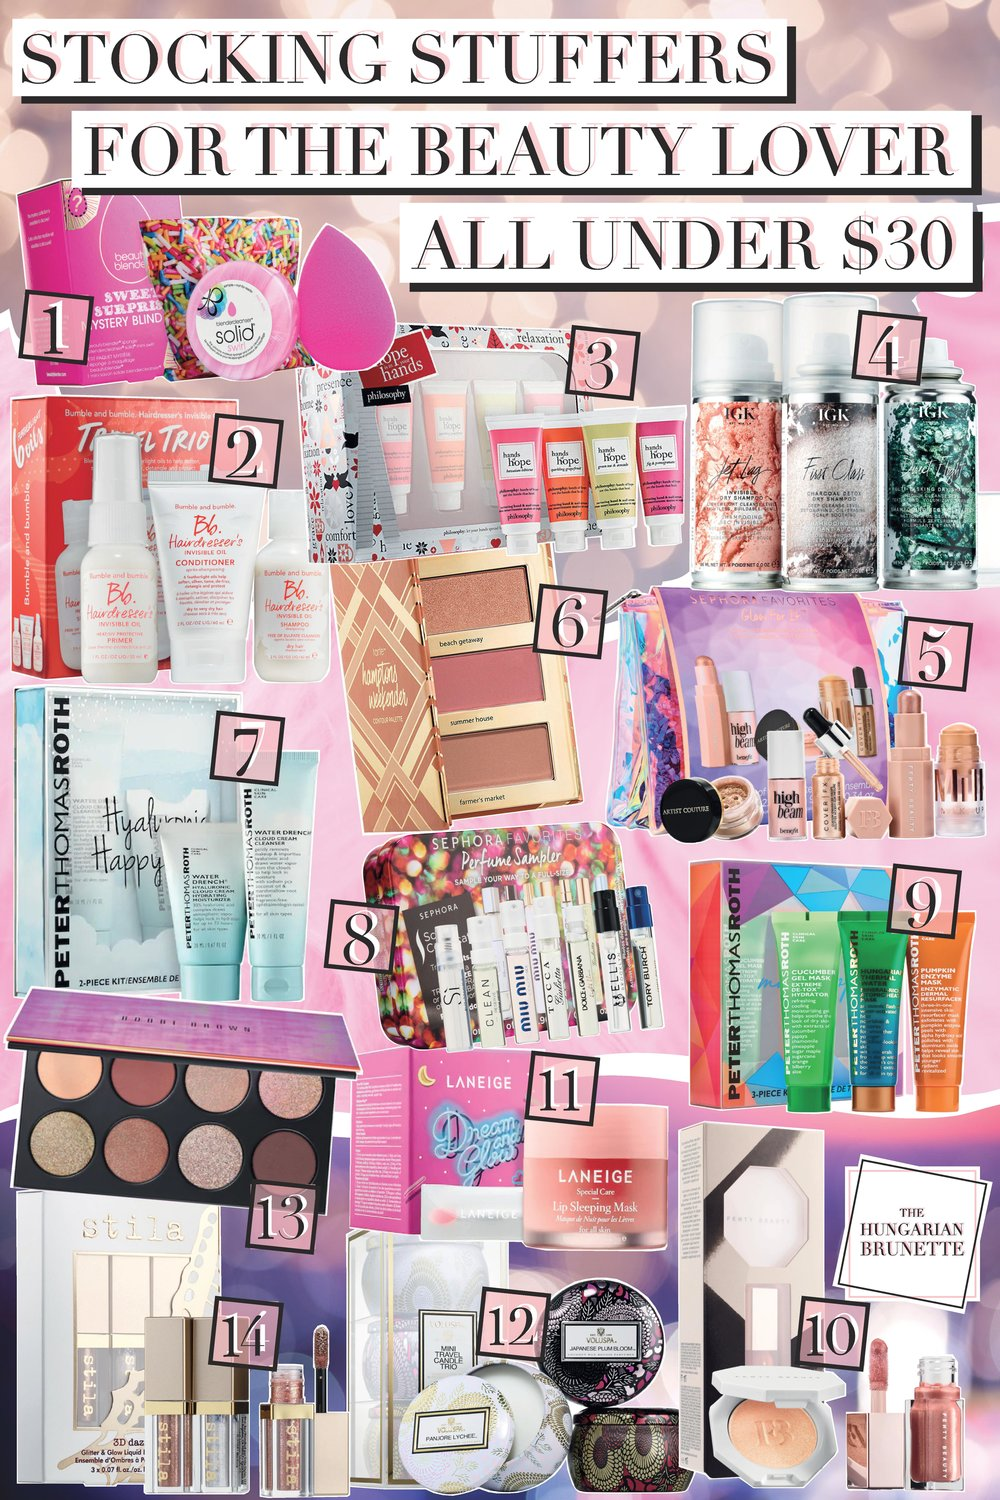 stocking stuffers for the beauty lover - all under 30$-page-001.jpg